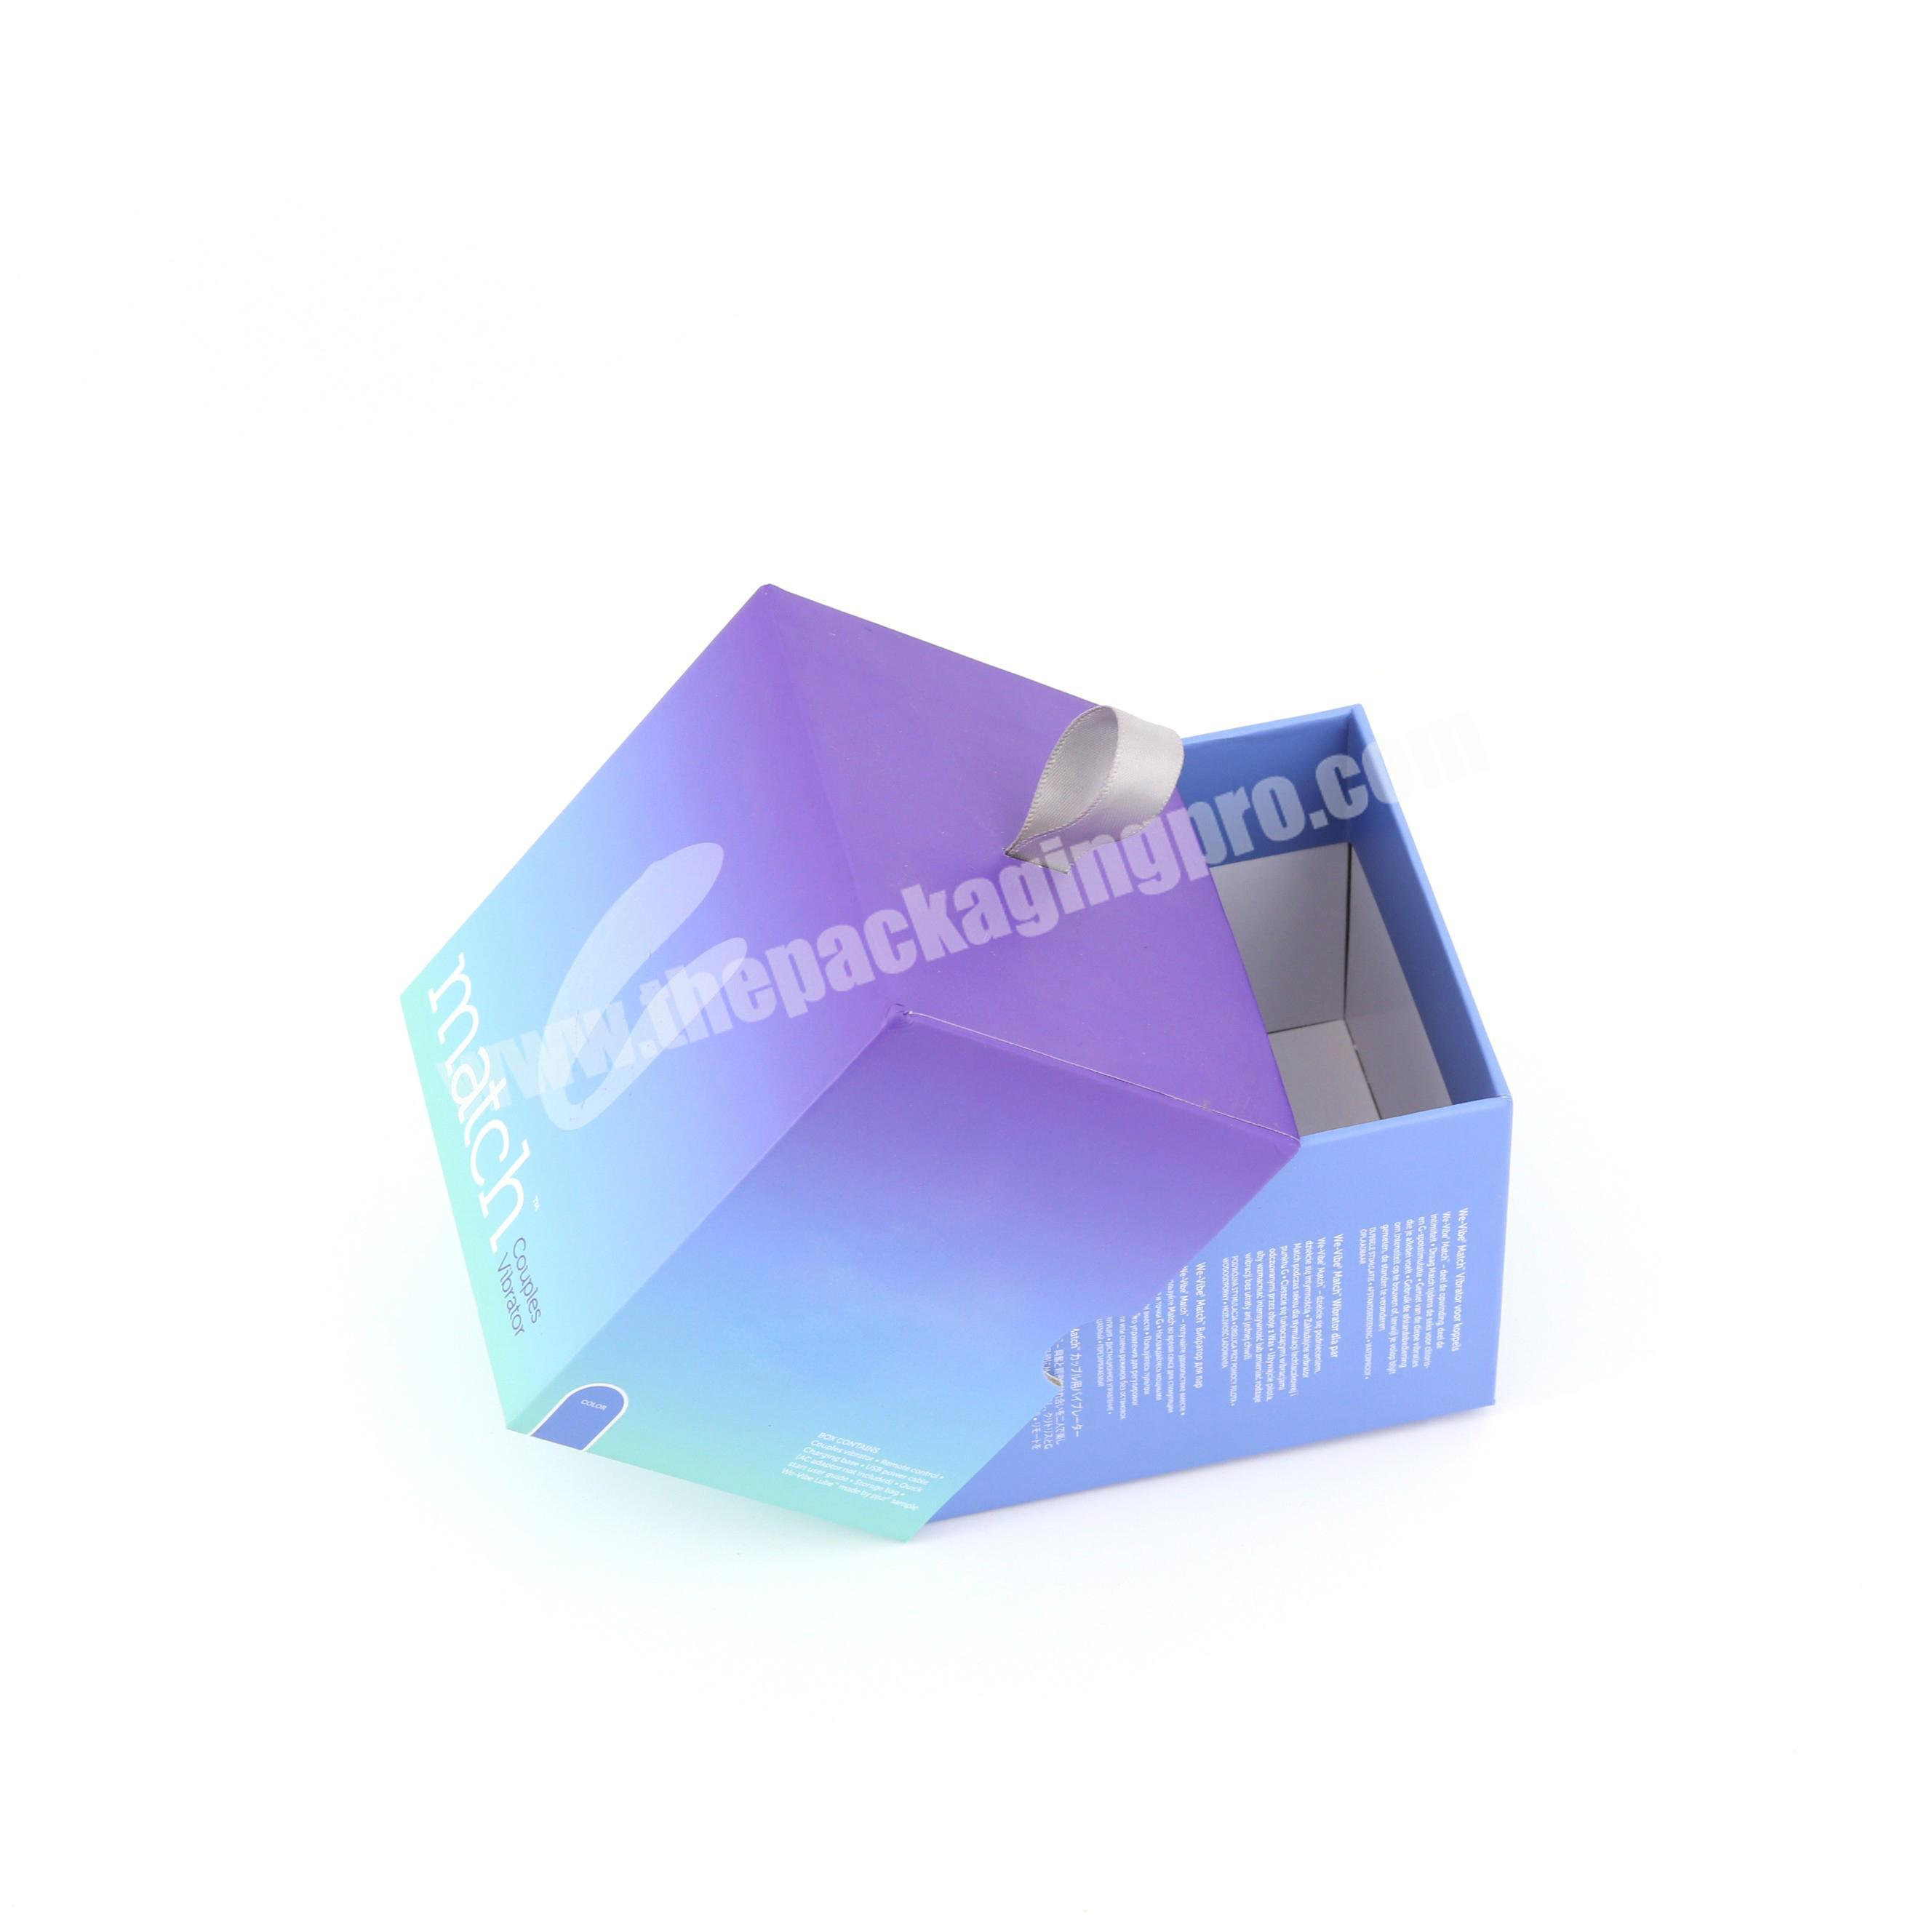 Custom logo lid packaging boxes wholesale adult product packing boxes with logo